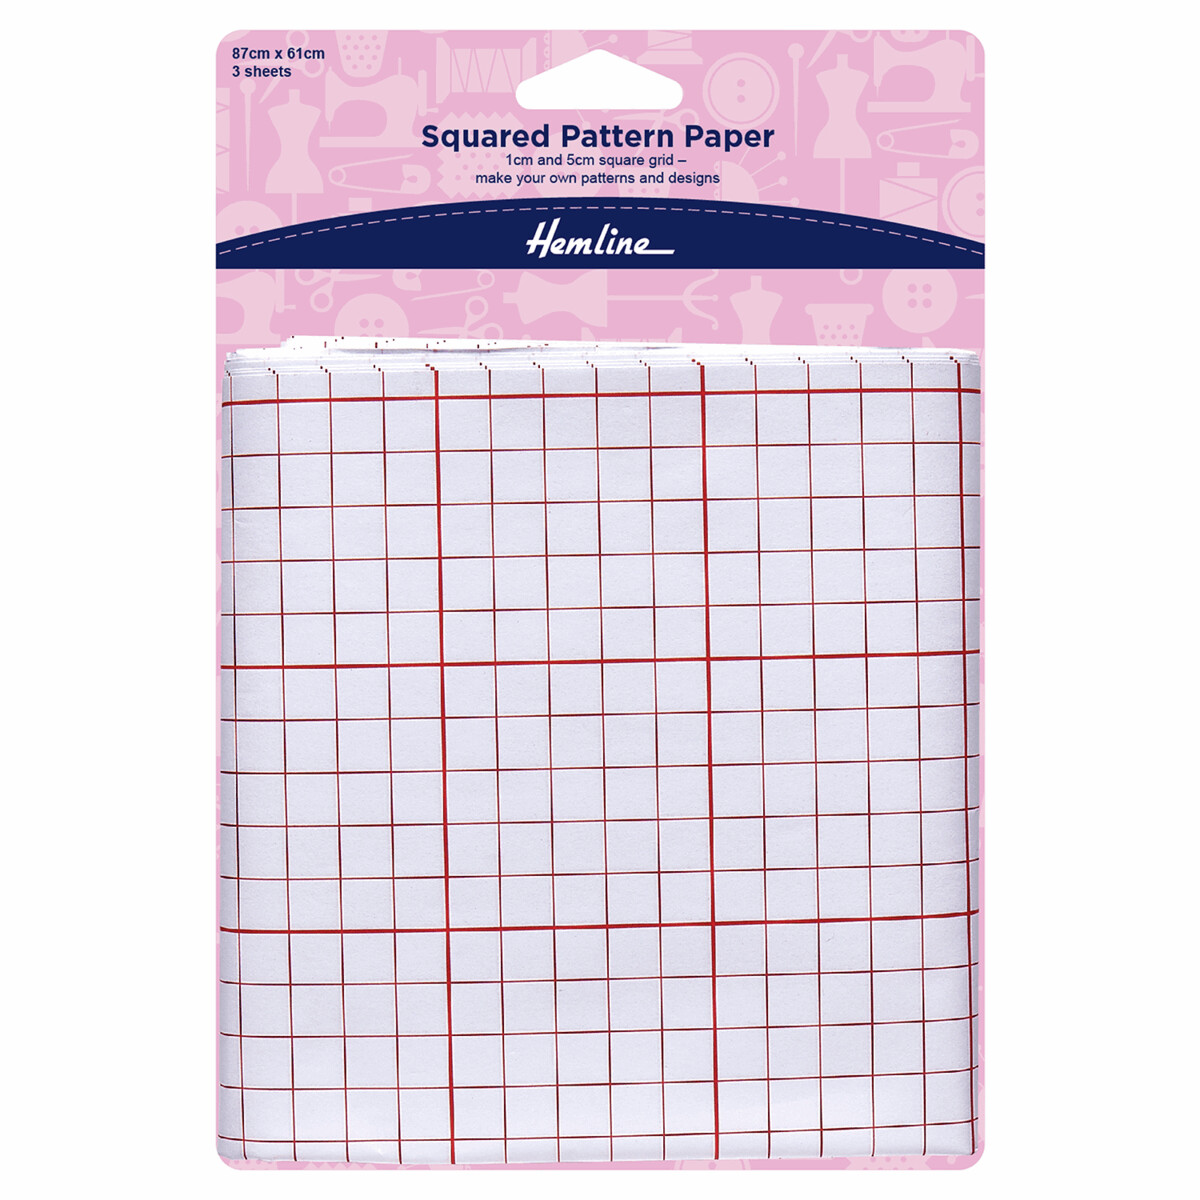 Squared Pattern Paper